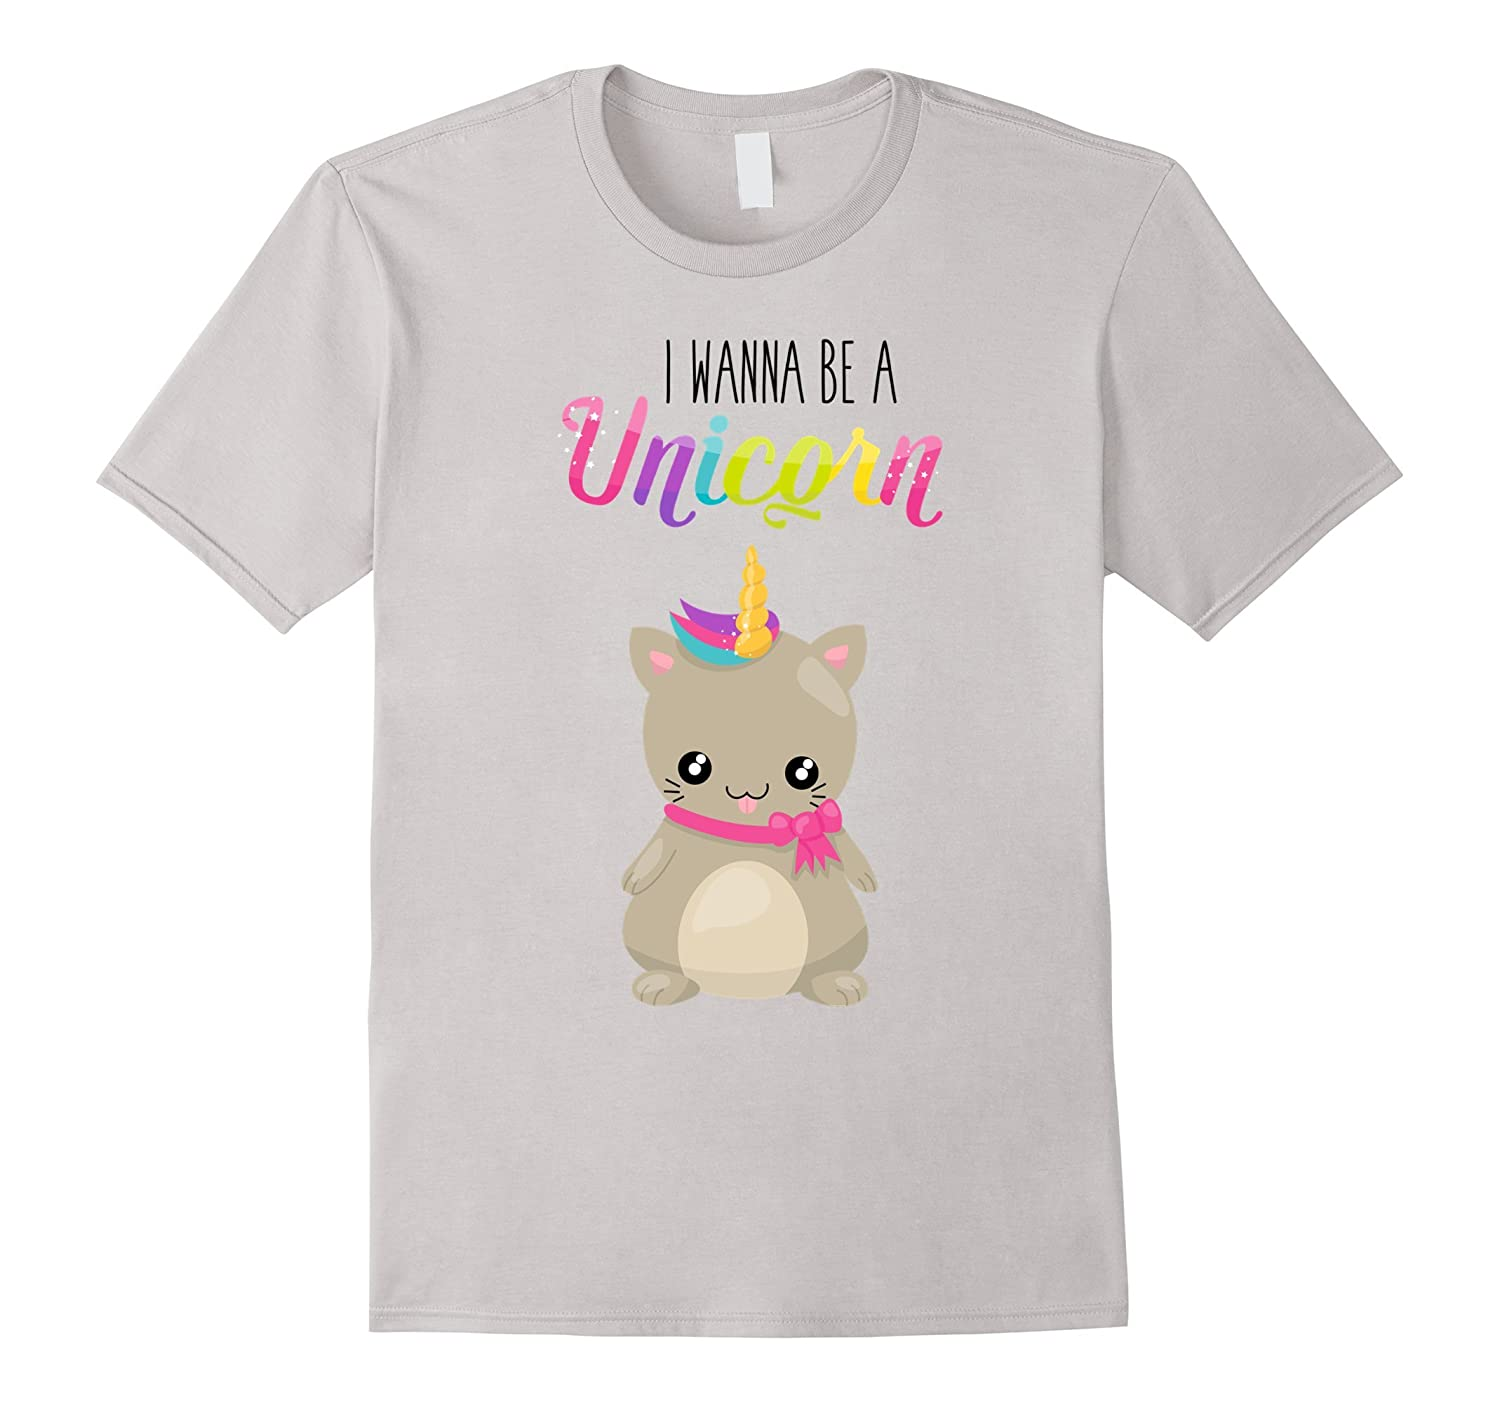 Adorable and Cute Cat Unicorn T Shirt For Women, Kids-CL